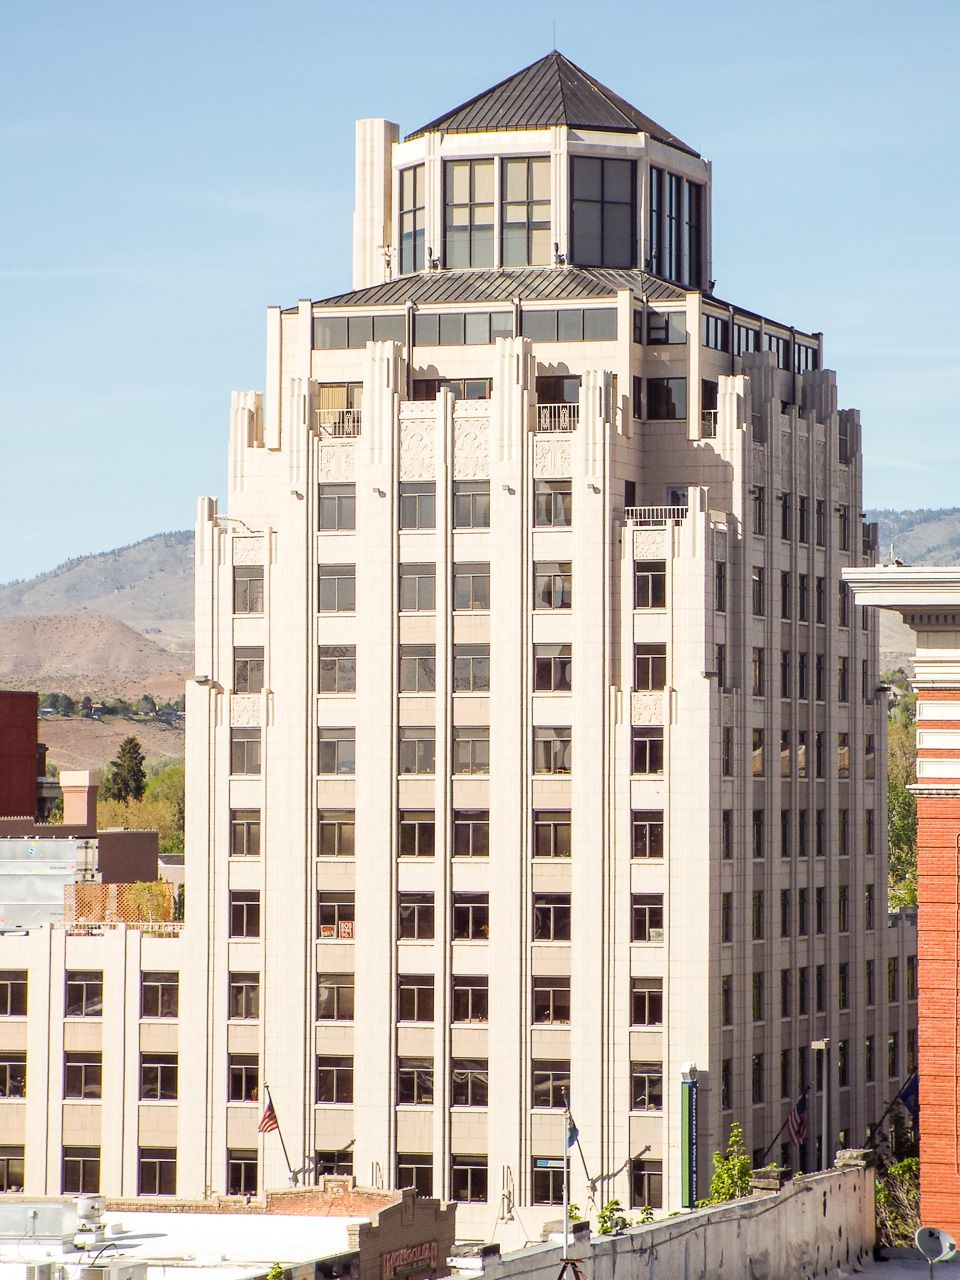 Hoff Building In Downtown Boise Idaho Imagine The Gorgeous Views Of The Foothills And The Rest Of Downtown From Downtown Boise Gorgeous View Wonderful Places